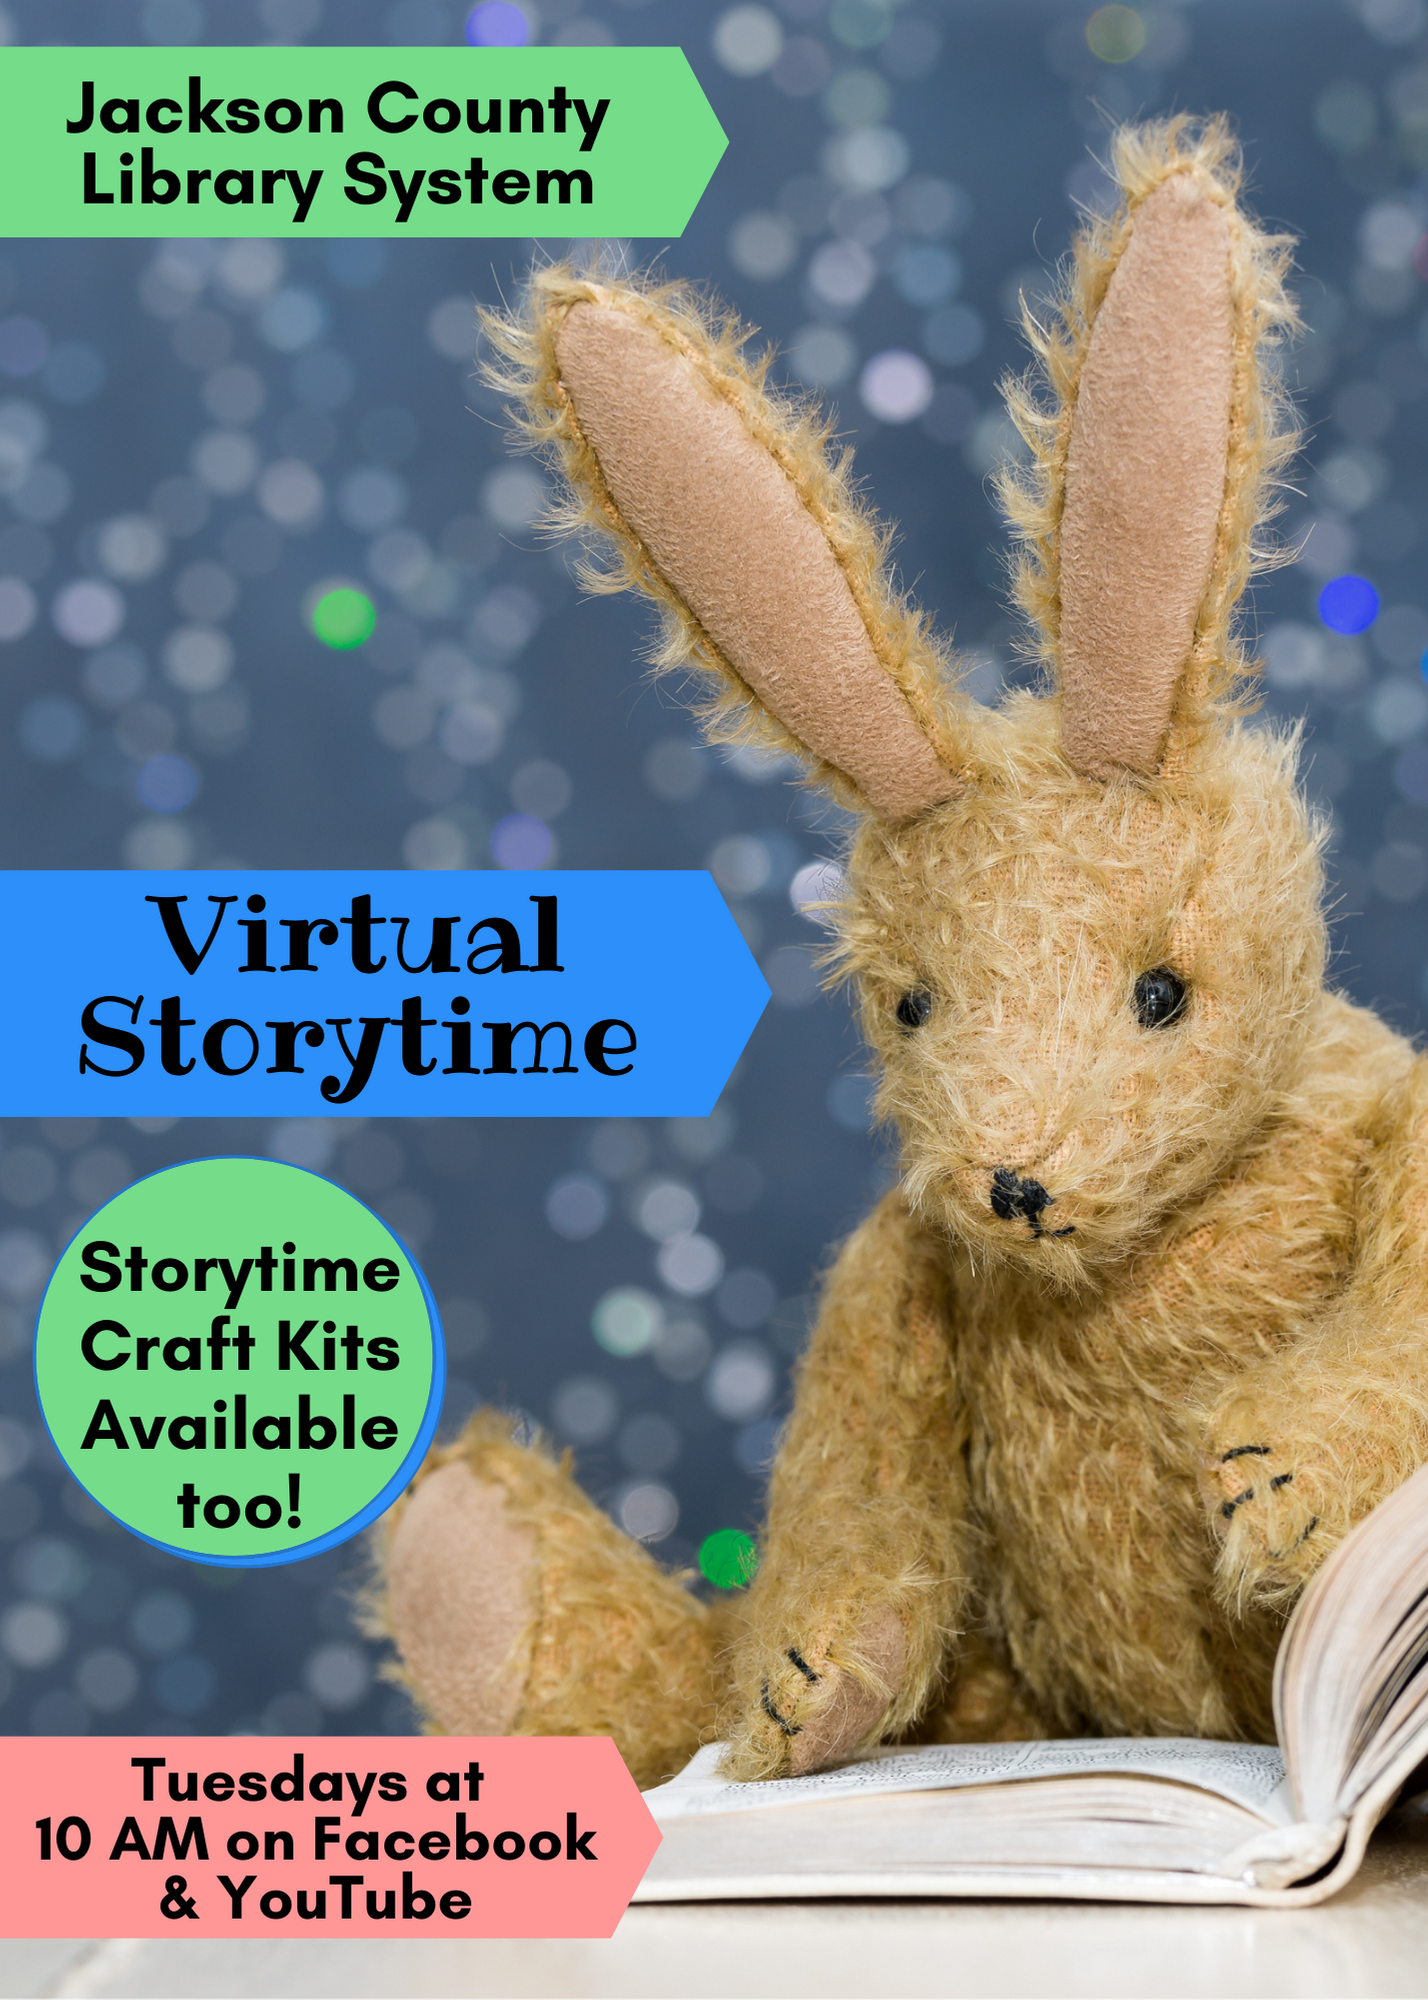 Virtual Storytime on Facebook and YouTube Tuesdays at 10 AM